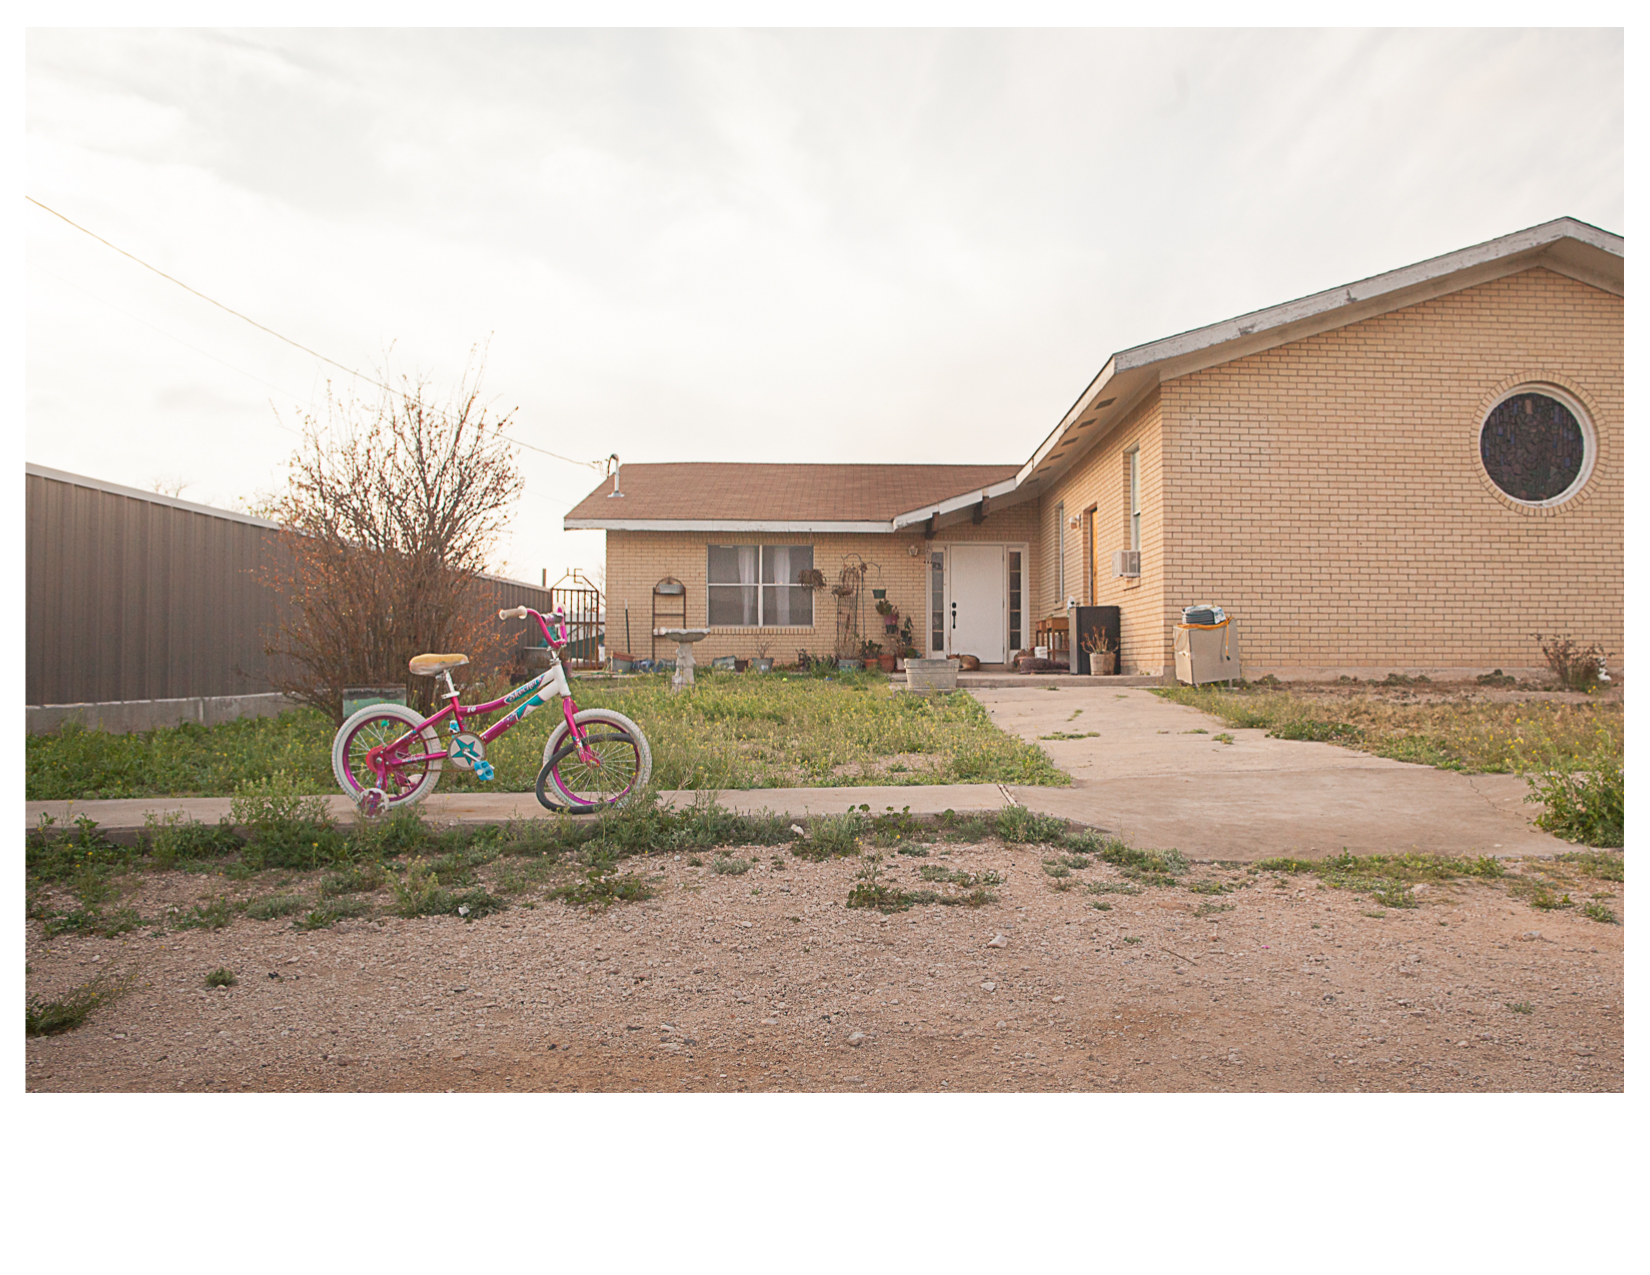 Bicycle and Front Yard, Sanderson, TX